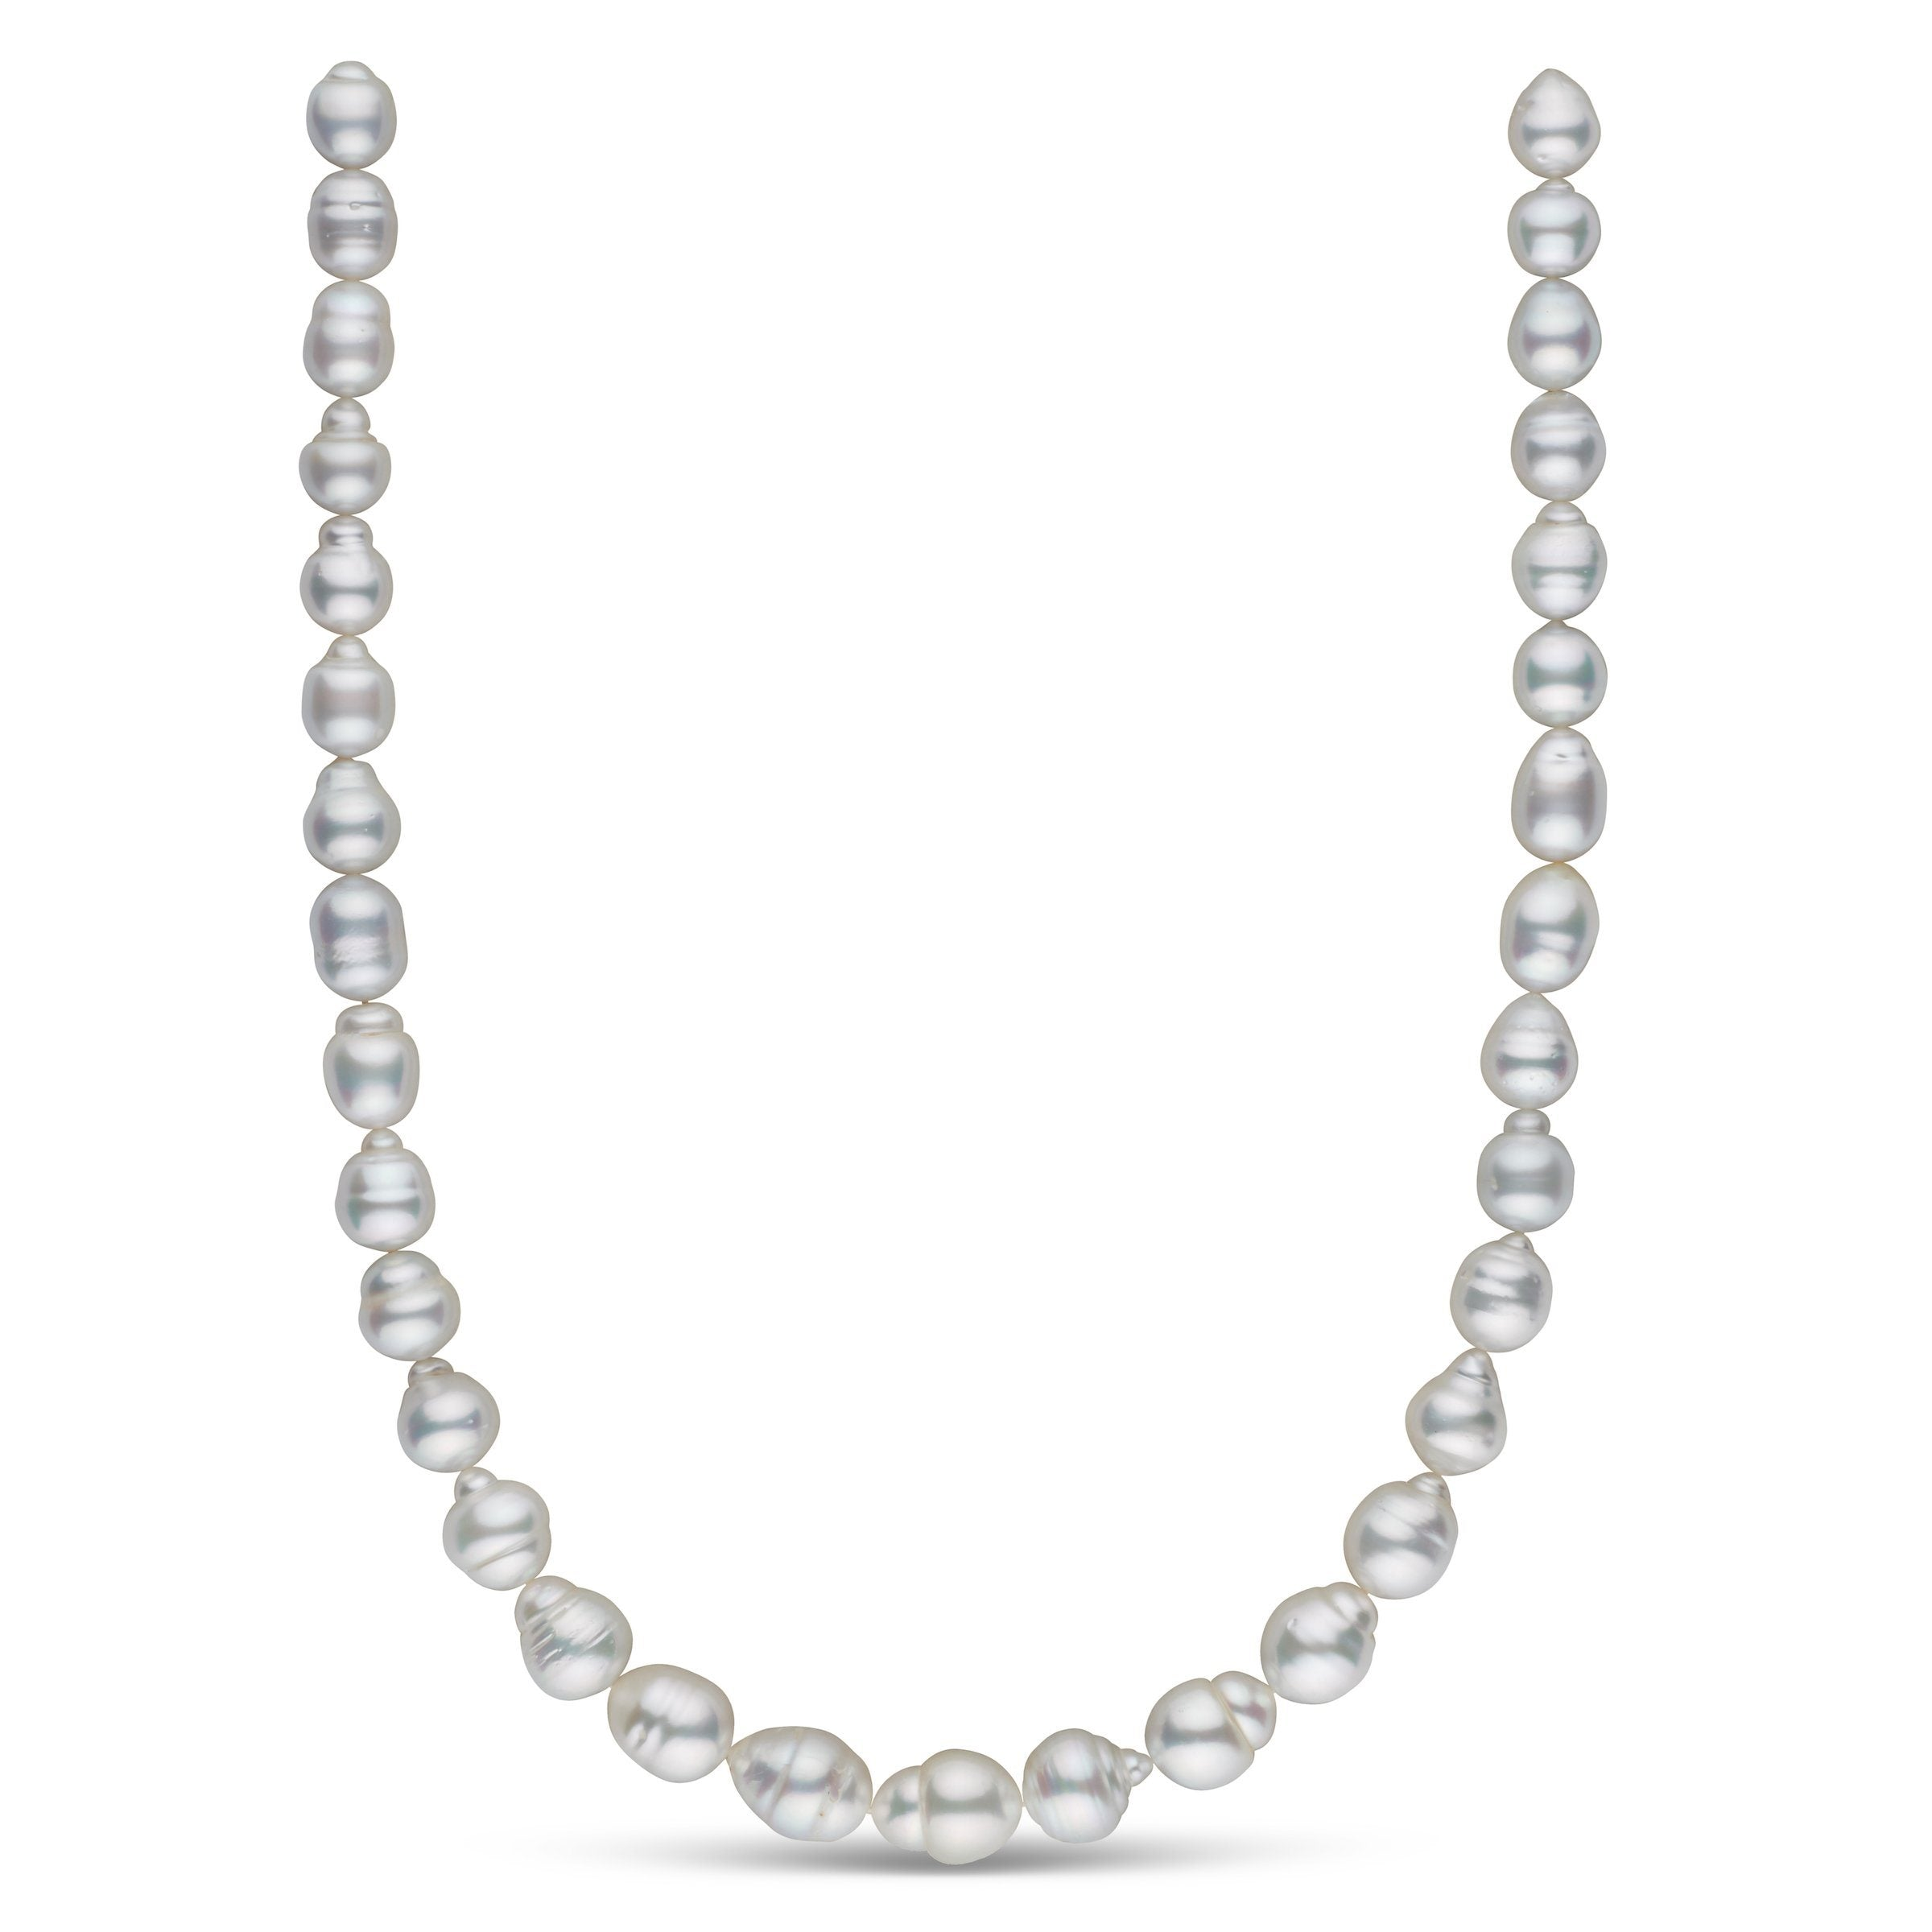 9.0-11.5 mm AA+/AAA White South Sea Baroque Necklace